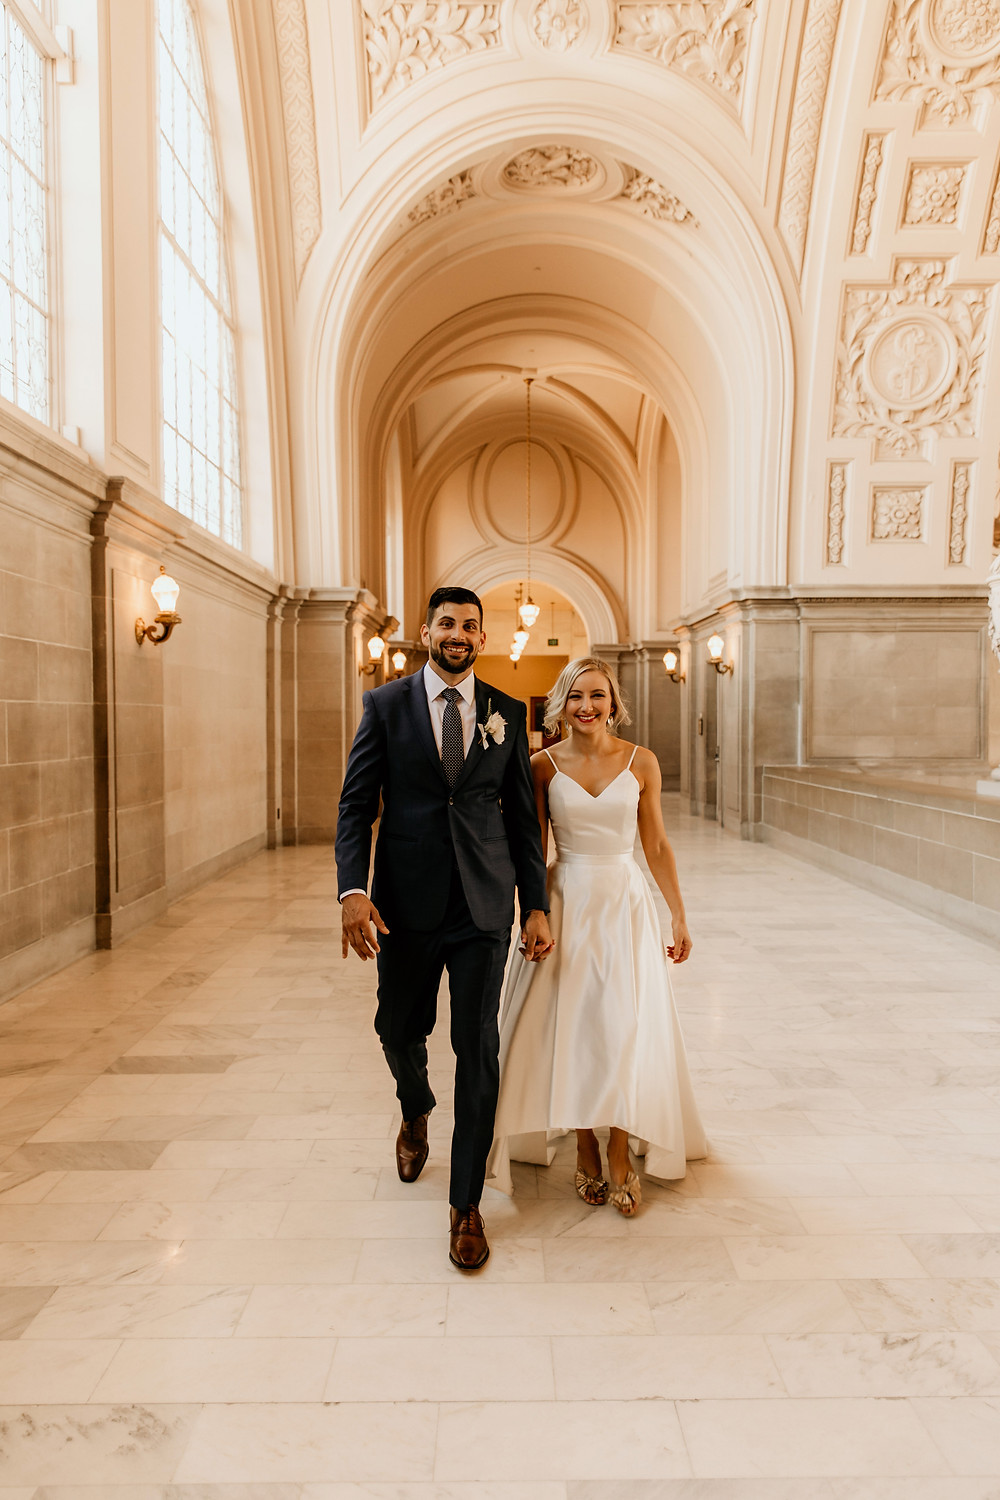 Wedding portraits at San Francisco City Hall before this chic city wedding ceremony.